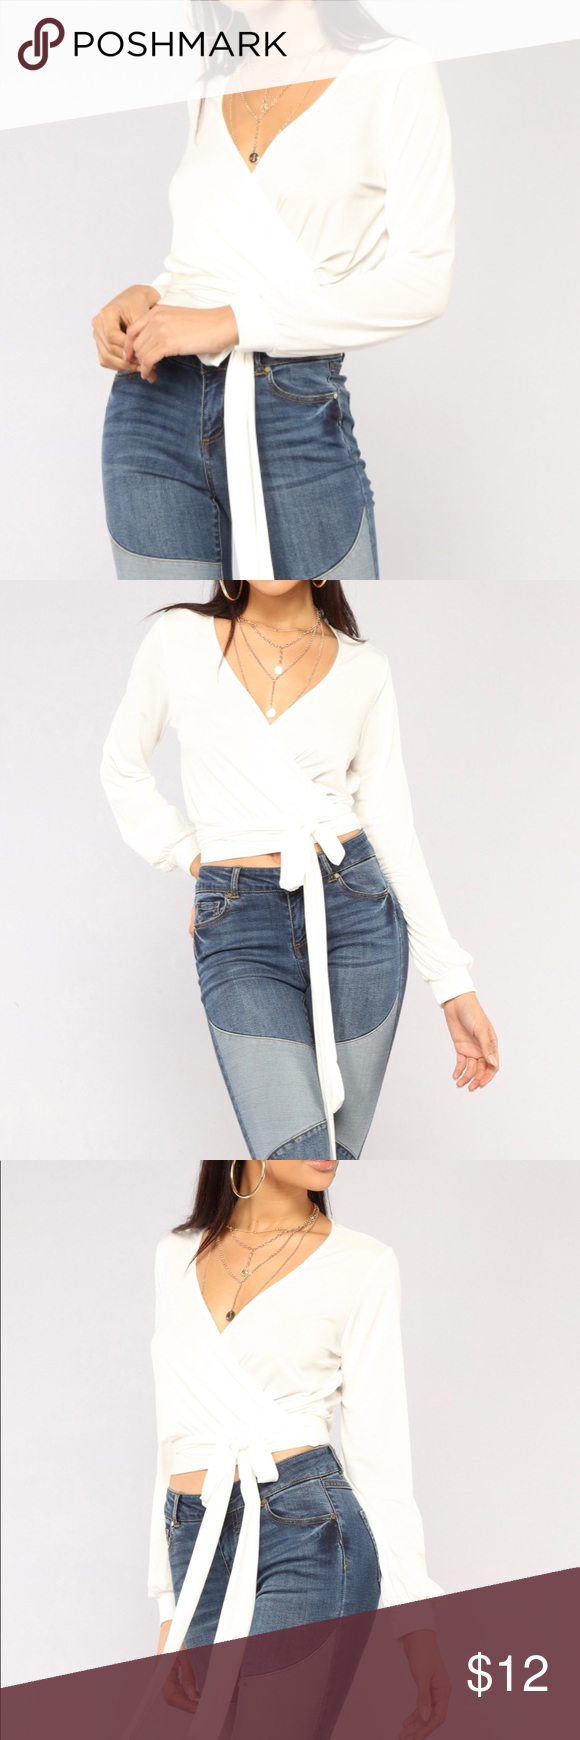 Wrap Me In Your Arms Fashion Nova Top Nwt Wrap Top Didn T Fit Me Right Selling Because I Don T Want To Pay To Return It Arm Fashion Fashion Fashion Nova Tops